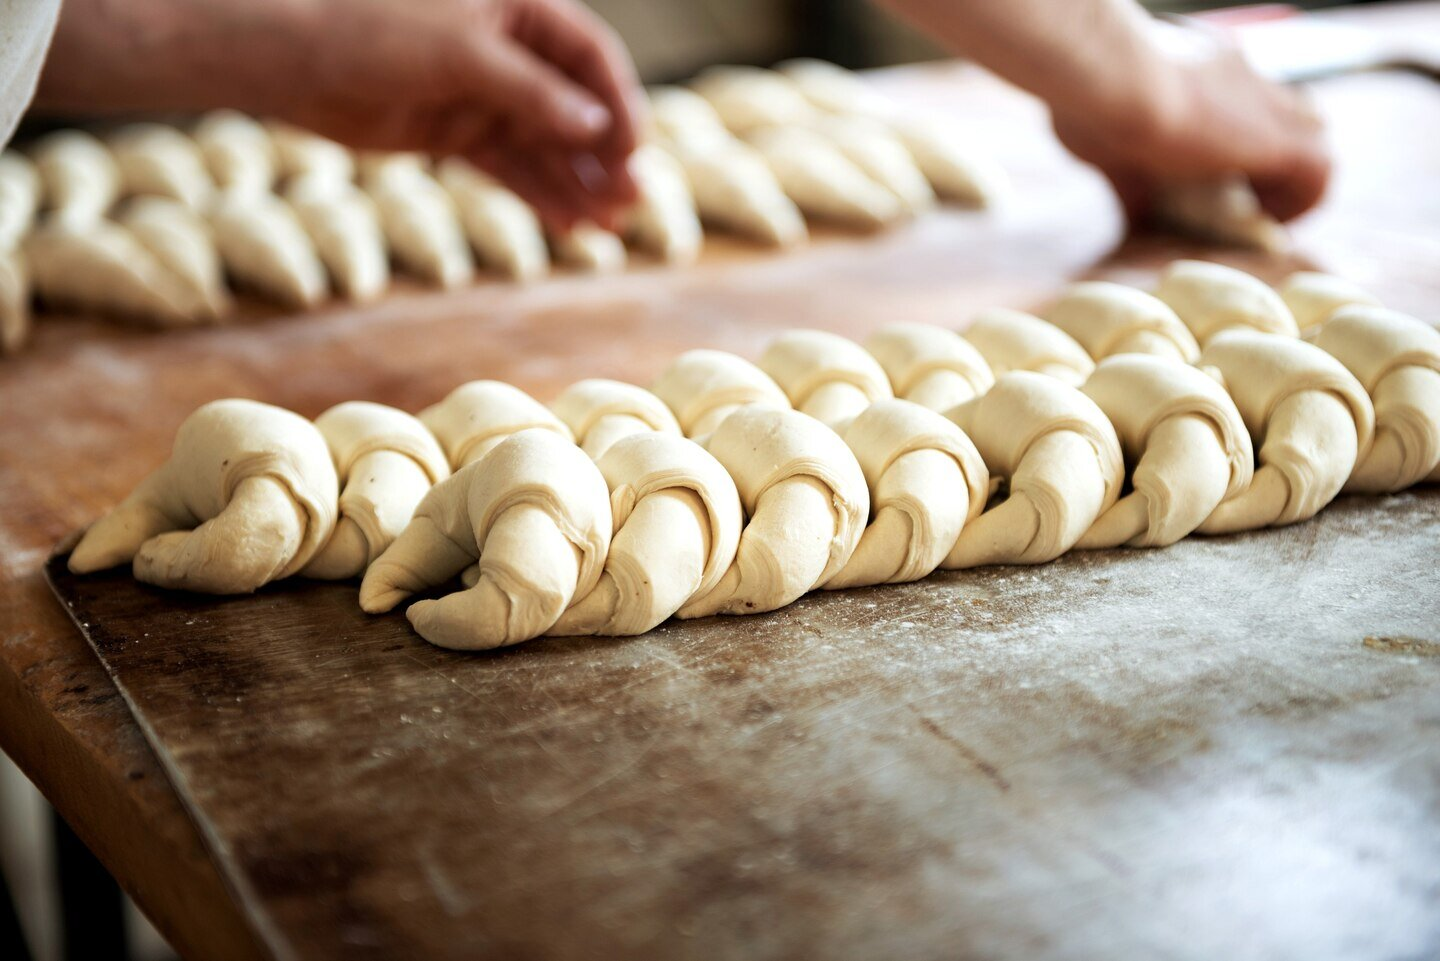 learn to bake croissants in a real bakery -